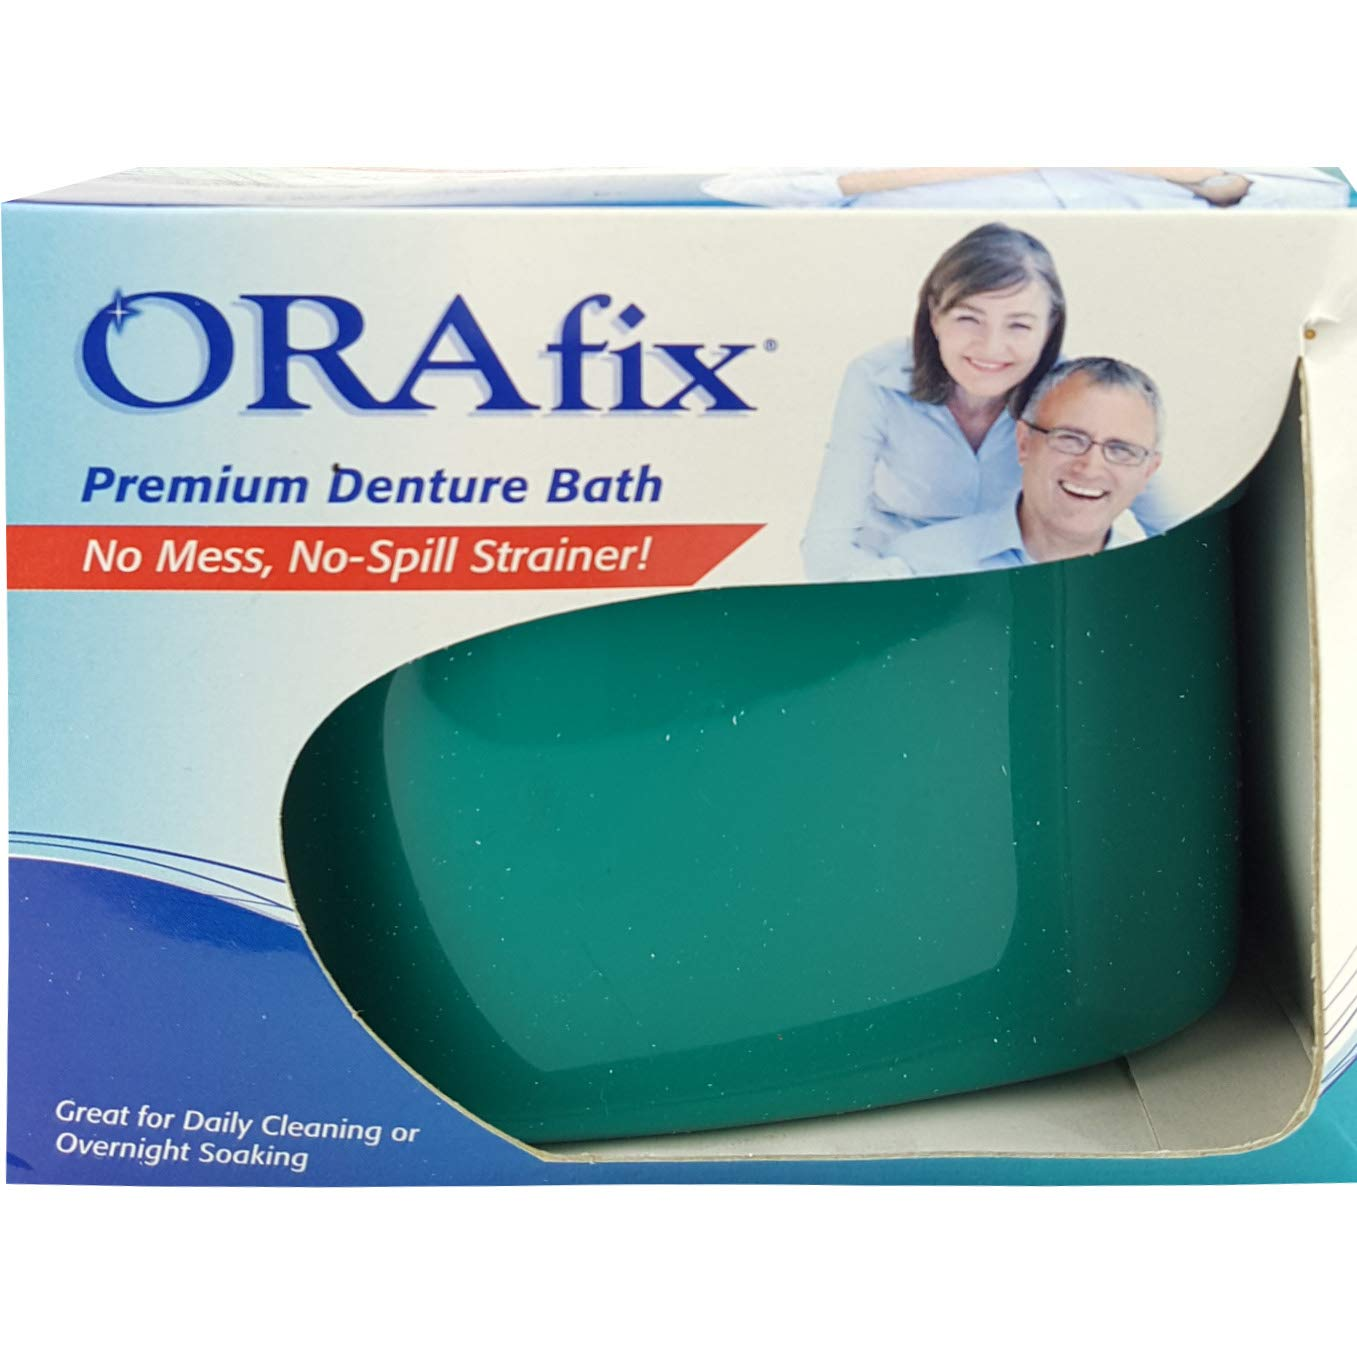 (Pack of 24) OraFix Denture Bath Complete Care, No Mess, No Spill Strainer by Orafix (Image #1)